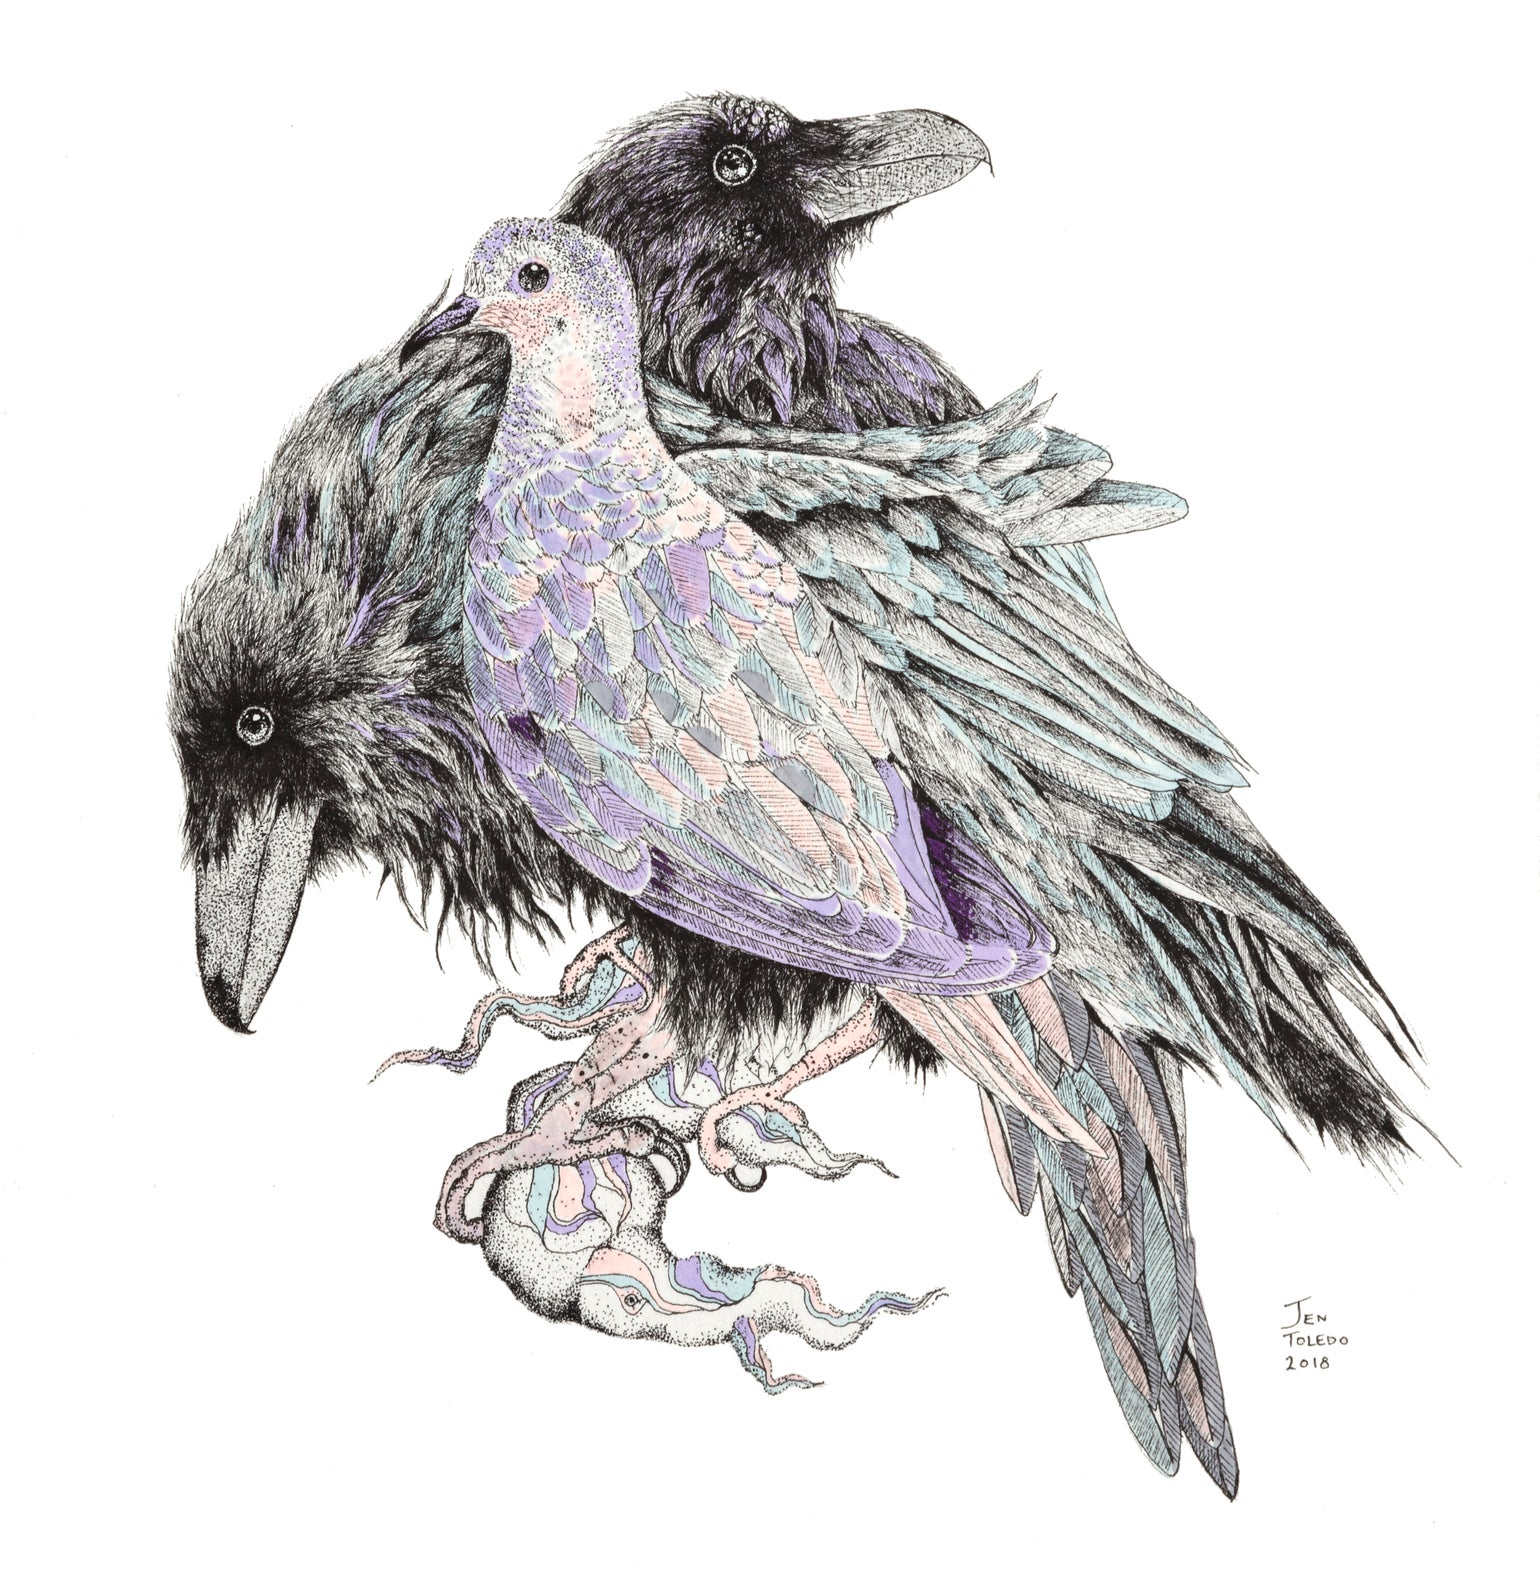 Image of Two Ravens, One Dove